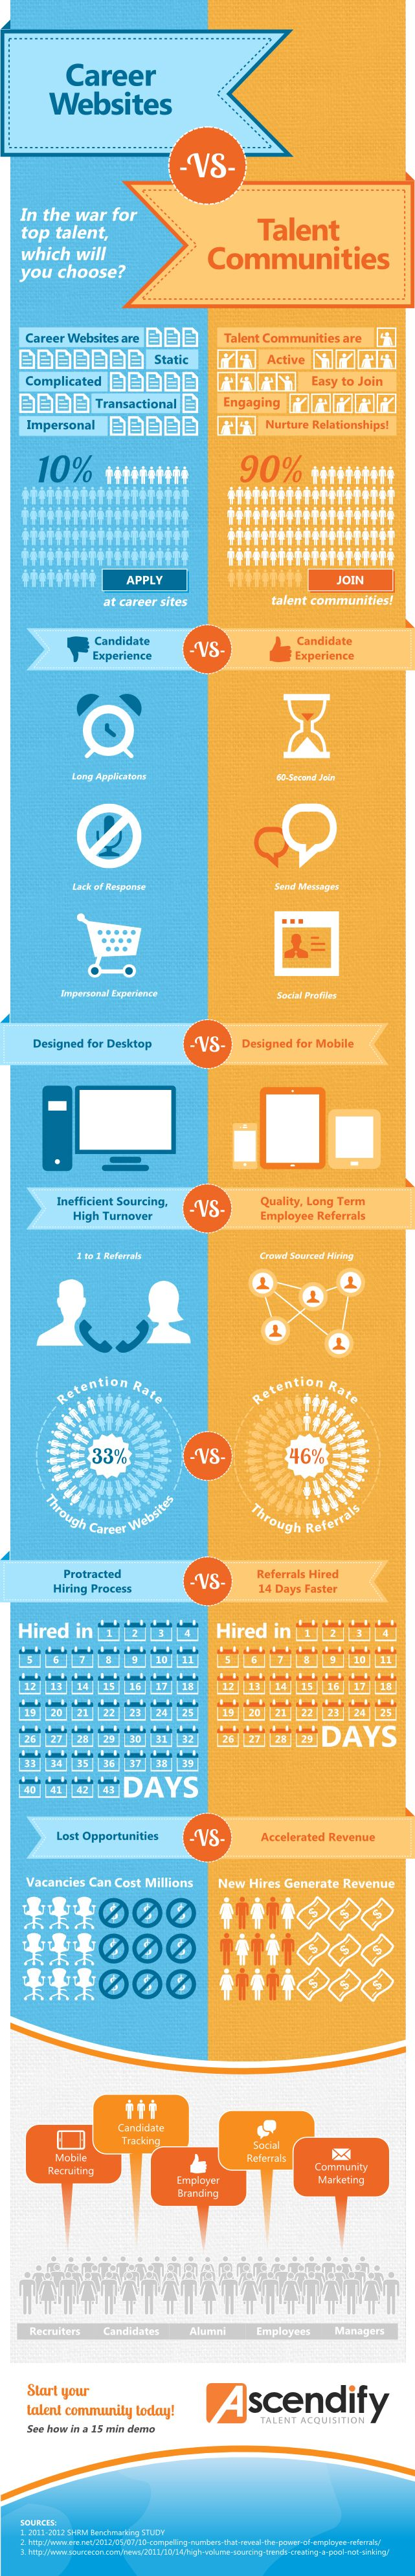 Talent Communities vs Career Websites: Which is Better? [INFOGRAPHIC]